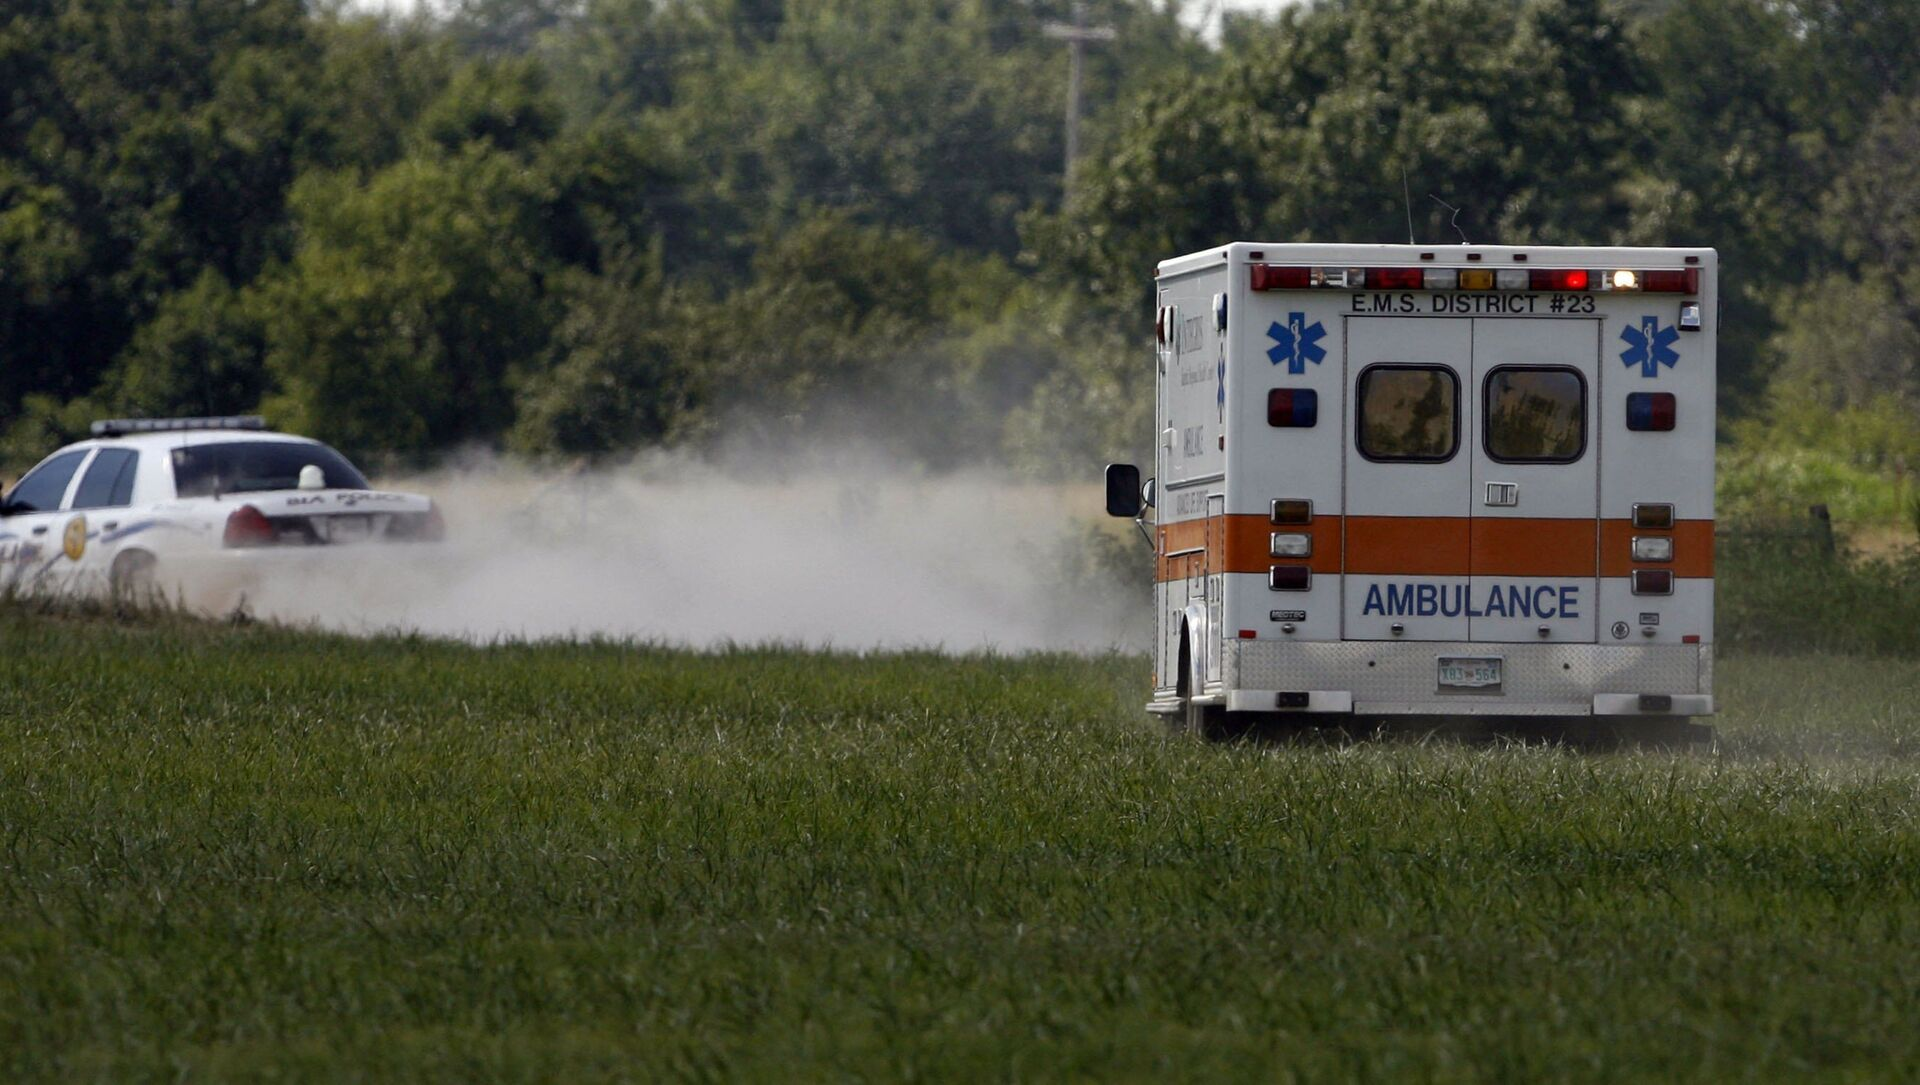 MIAMI, OK - JULY 23:  The ambulance carries thirty eight year old Trigger Gumm, who crashed while attempting a 315-foot motorcycle jump on a 450cc Service Honda outfitted with a custom-built 4-stroke engine at Buffalo Run Casino, July 23, 2006 in Miami, Oklahoma. If not for the crash, the jump would have been a world record with the length of more than a football field. After the crash, Gumm was able to walk to the medical car that transported him to a hospital for further evaluation. - Sputnik International, 1920, 31.07.2021